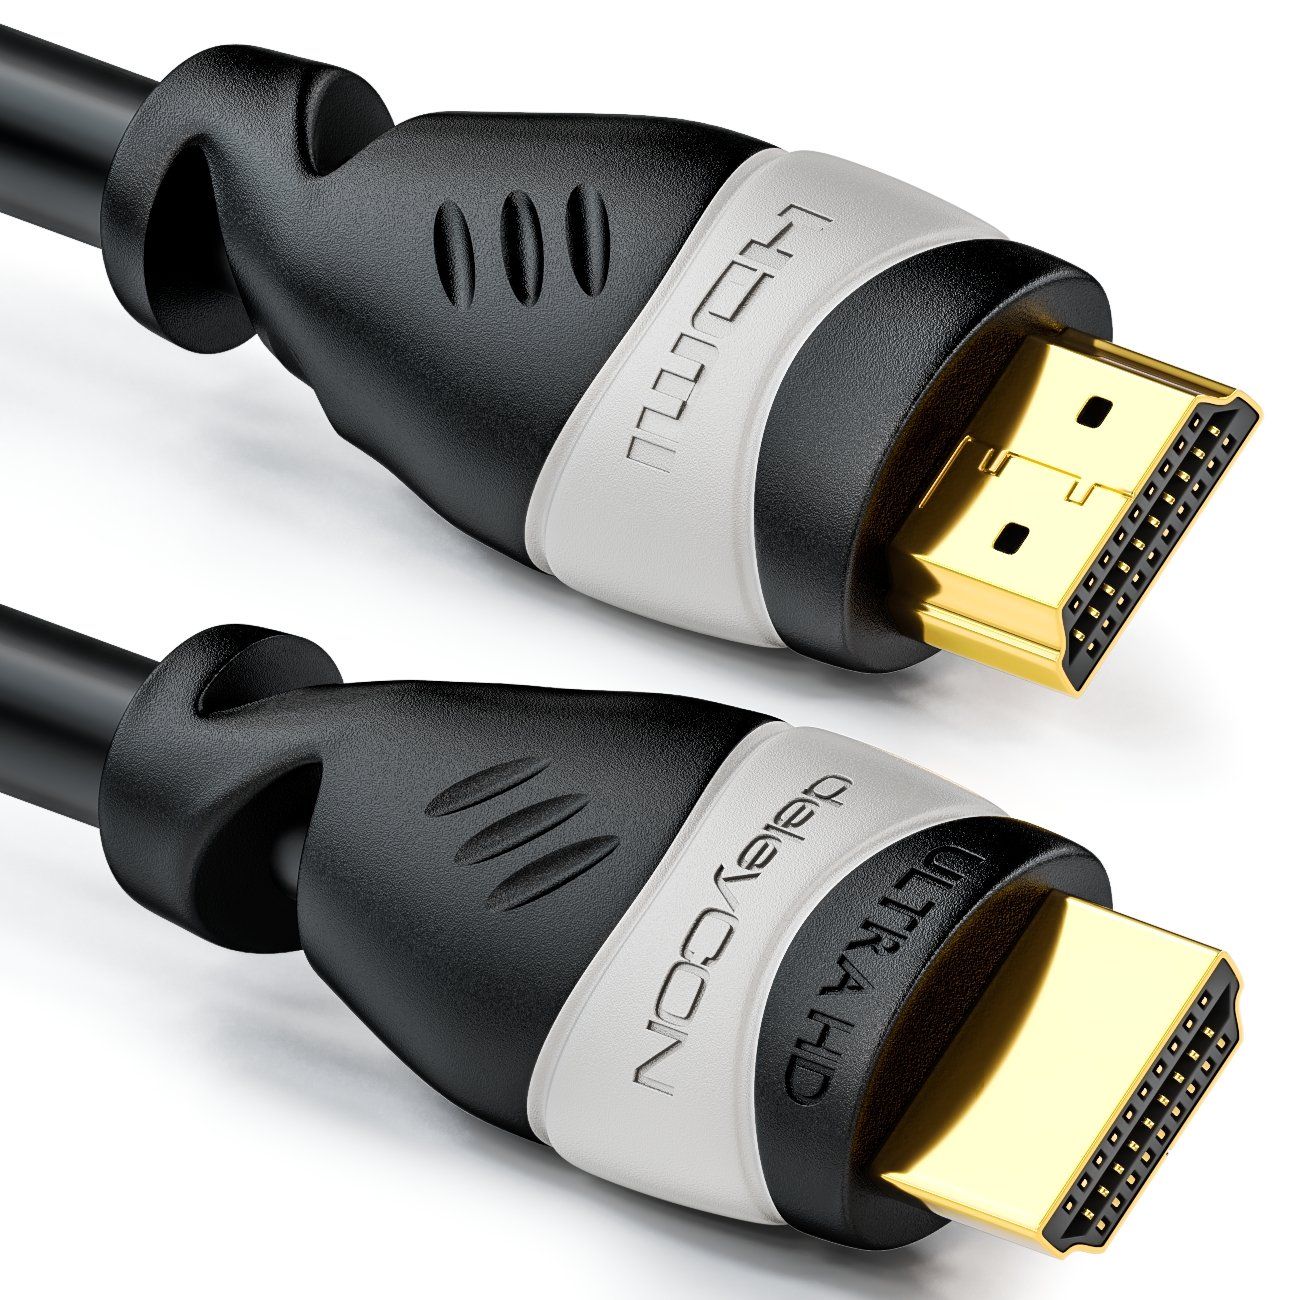 deleyCON 5m Cable HDMI - Compatible con HDMI 2.0a/b/1.4a UHD Ultra HD 4K HDR 3D 1080p 2160p ARC TV LED Proyector PC OLED - Negro Gris